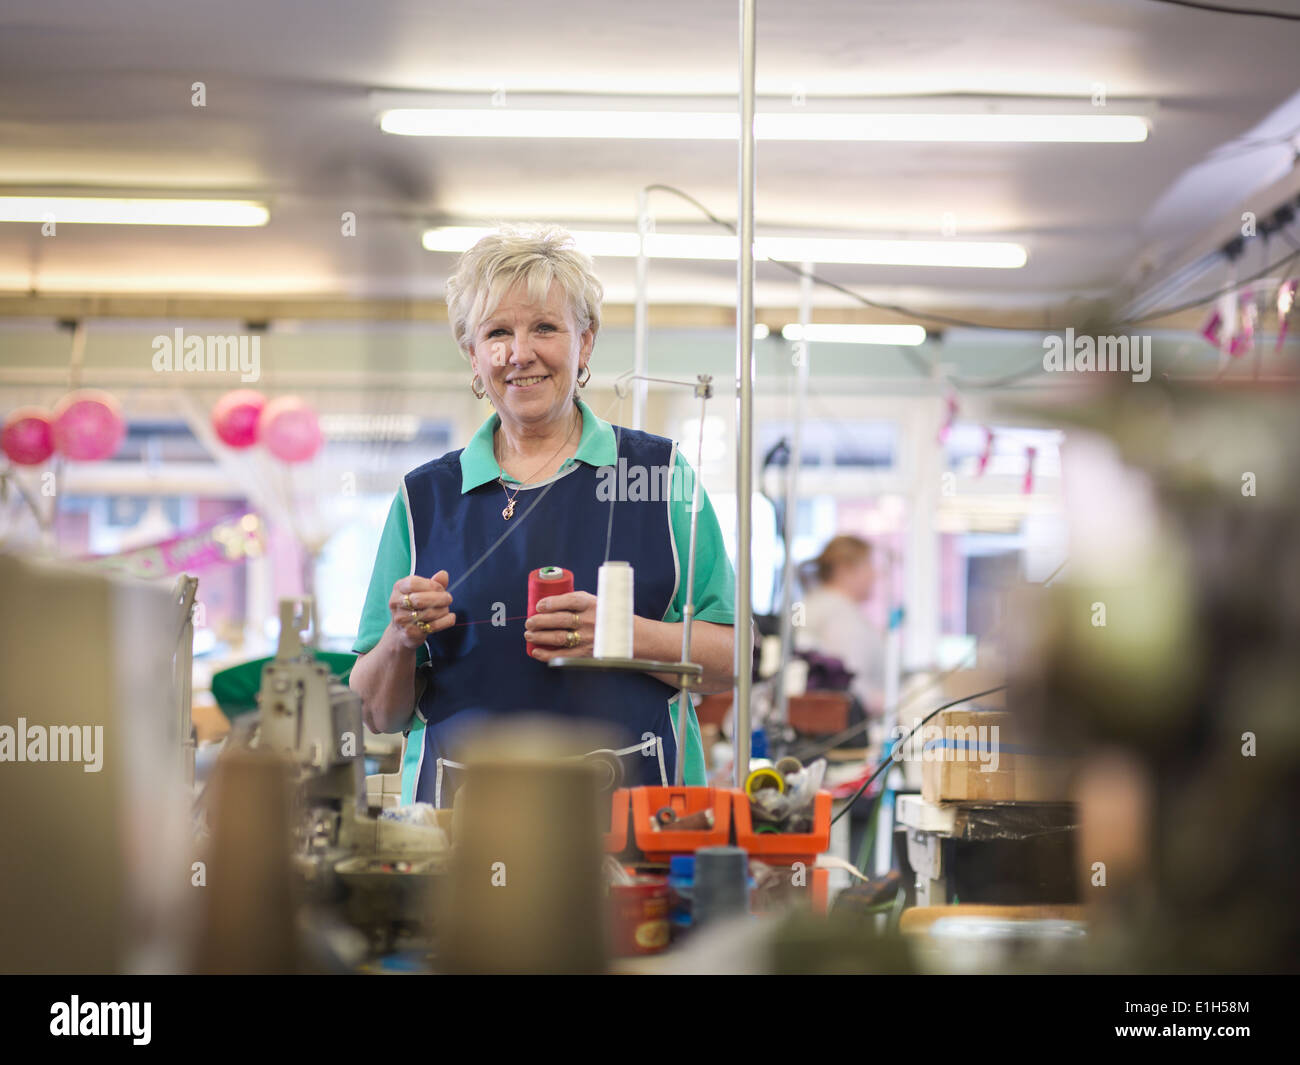 Directrice de l'usine de confection, portrait Photo Stock